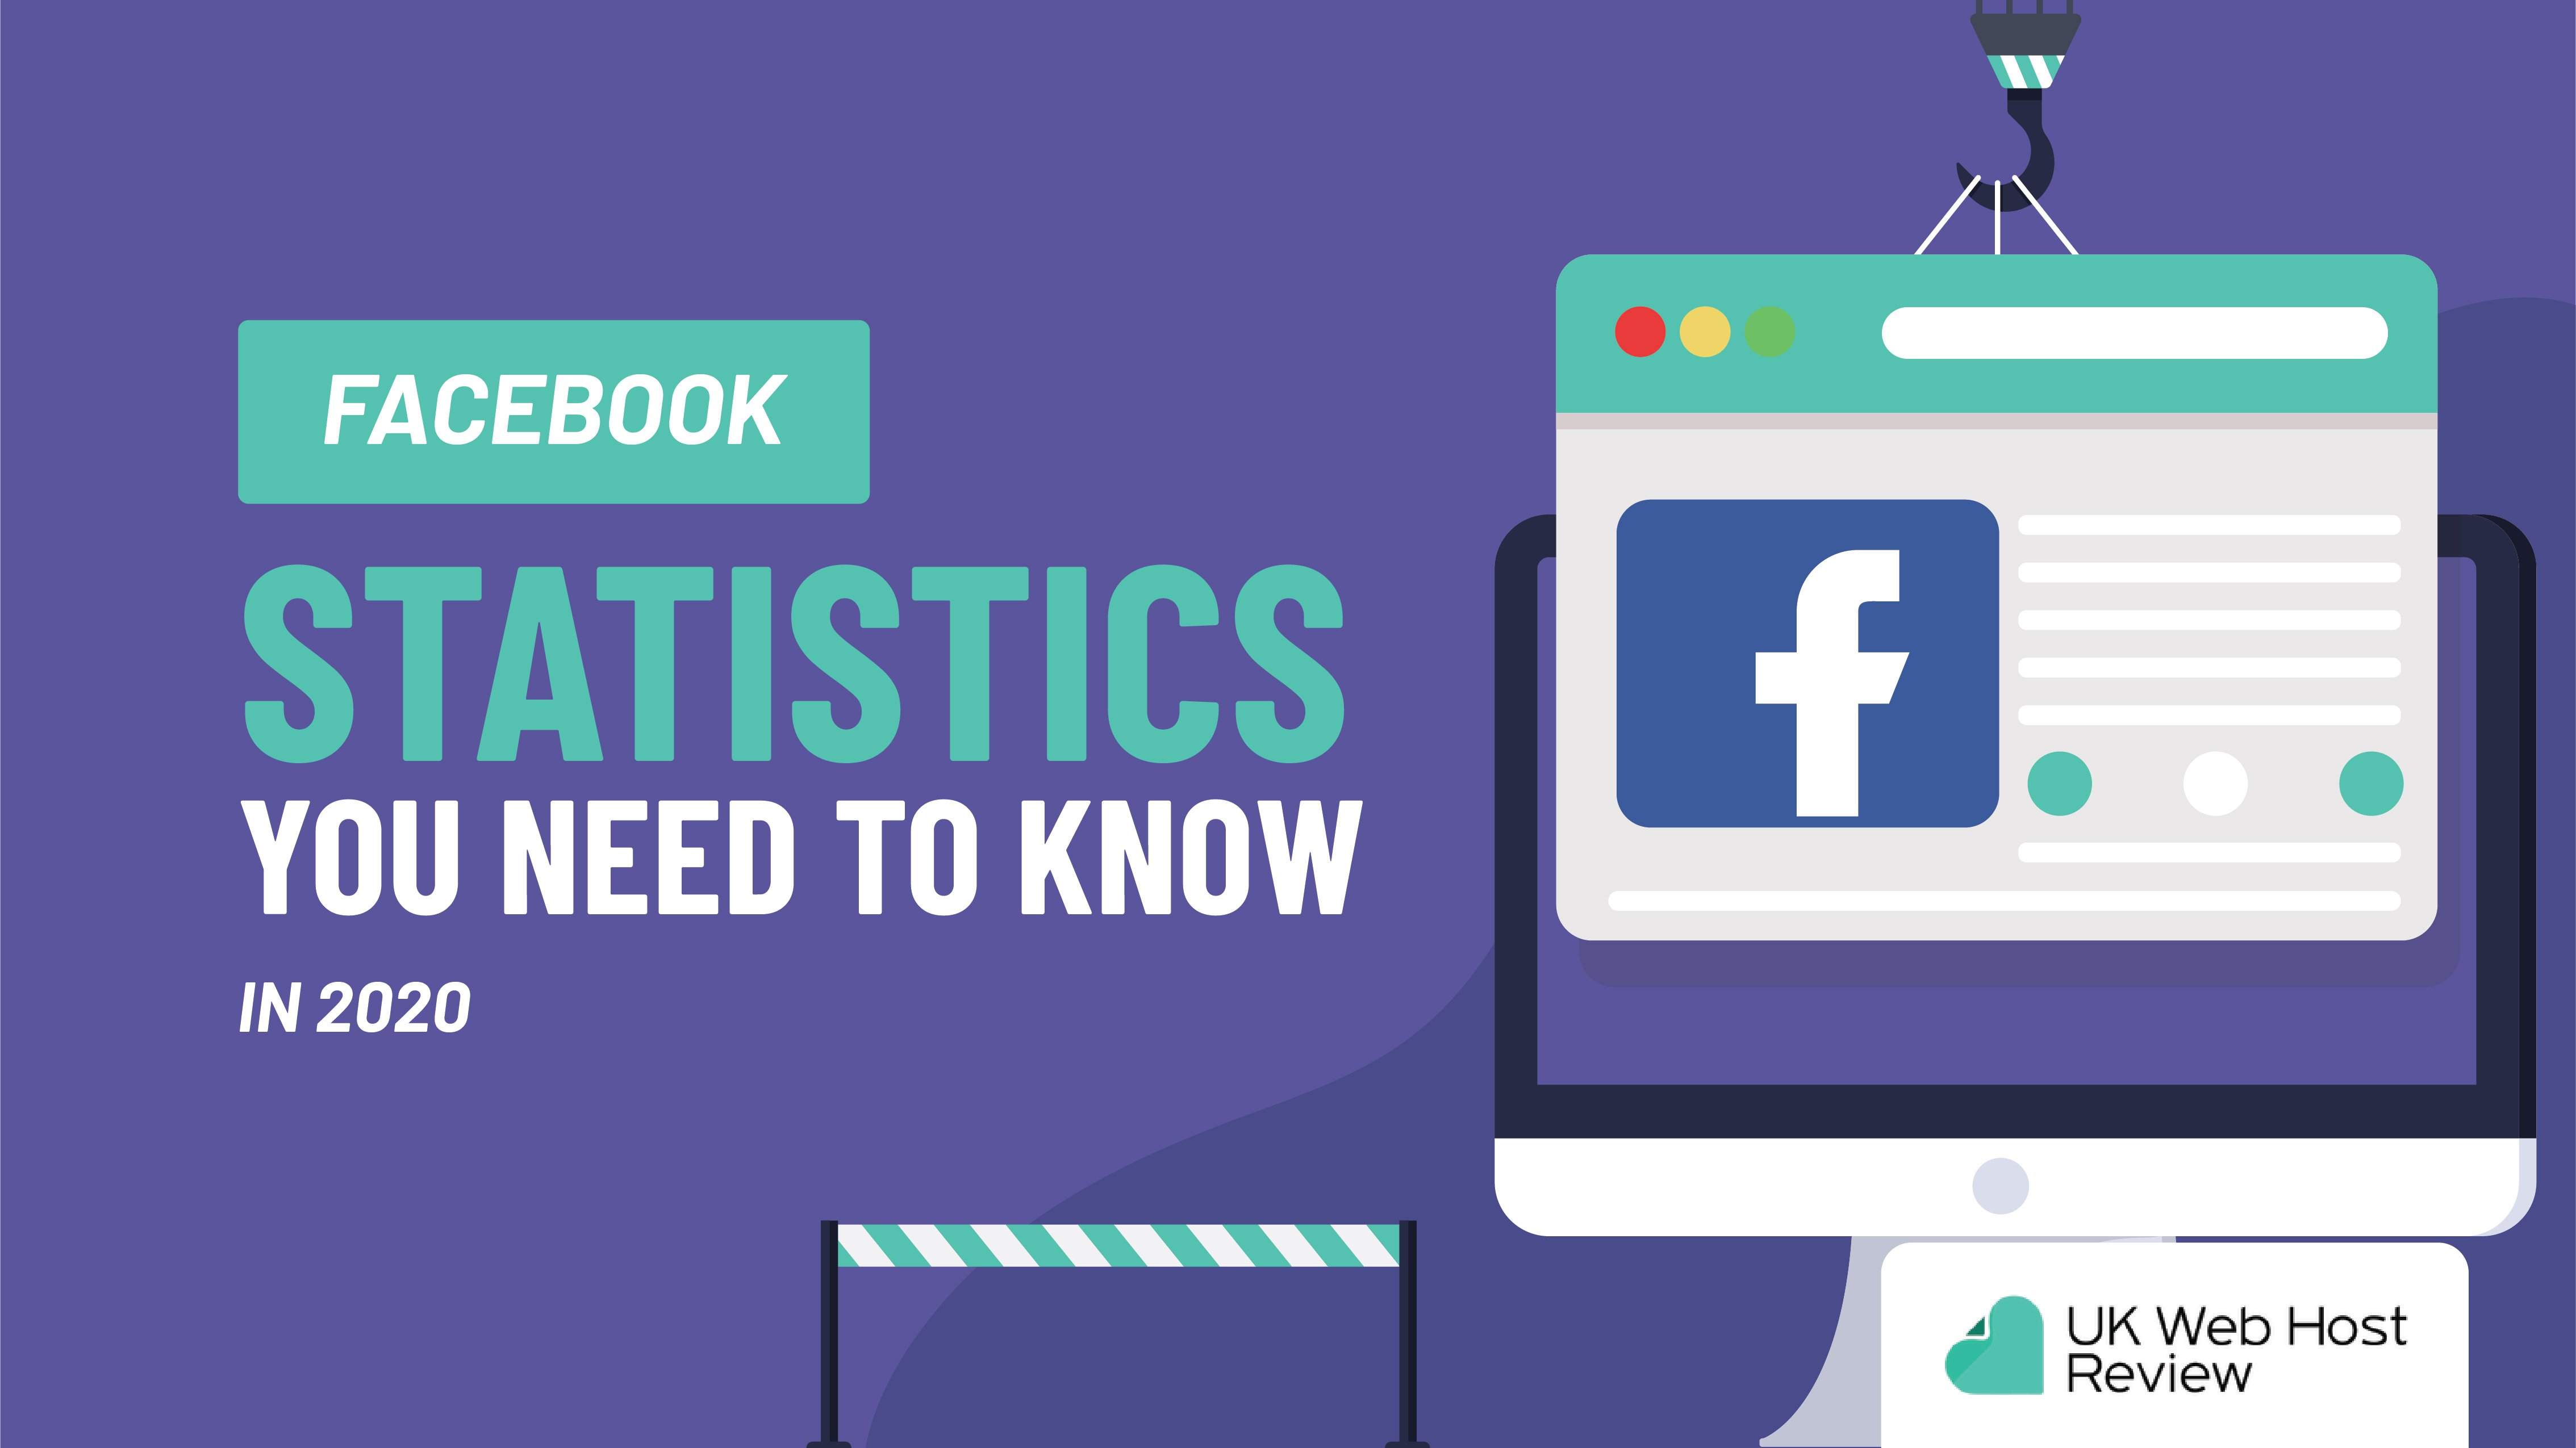 Facebook Statistics You Need to Know in 2021 [INFOGRAPHIC]